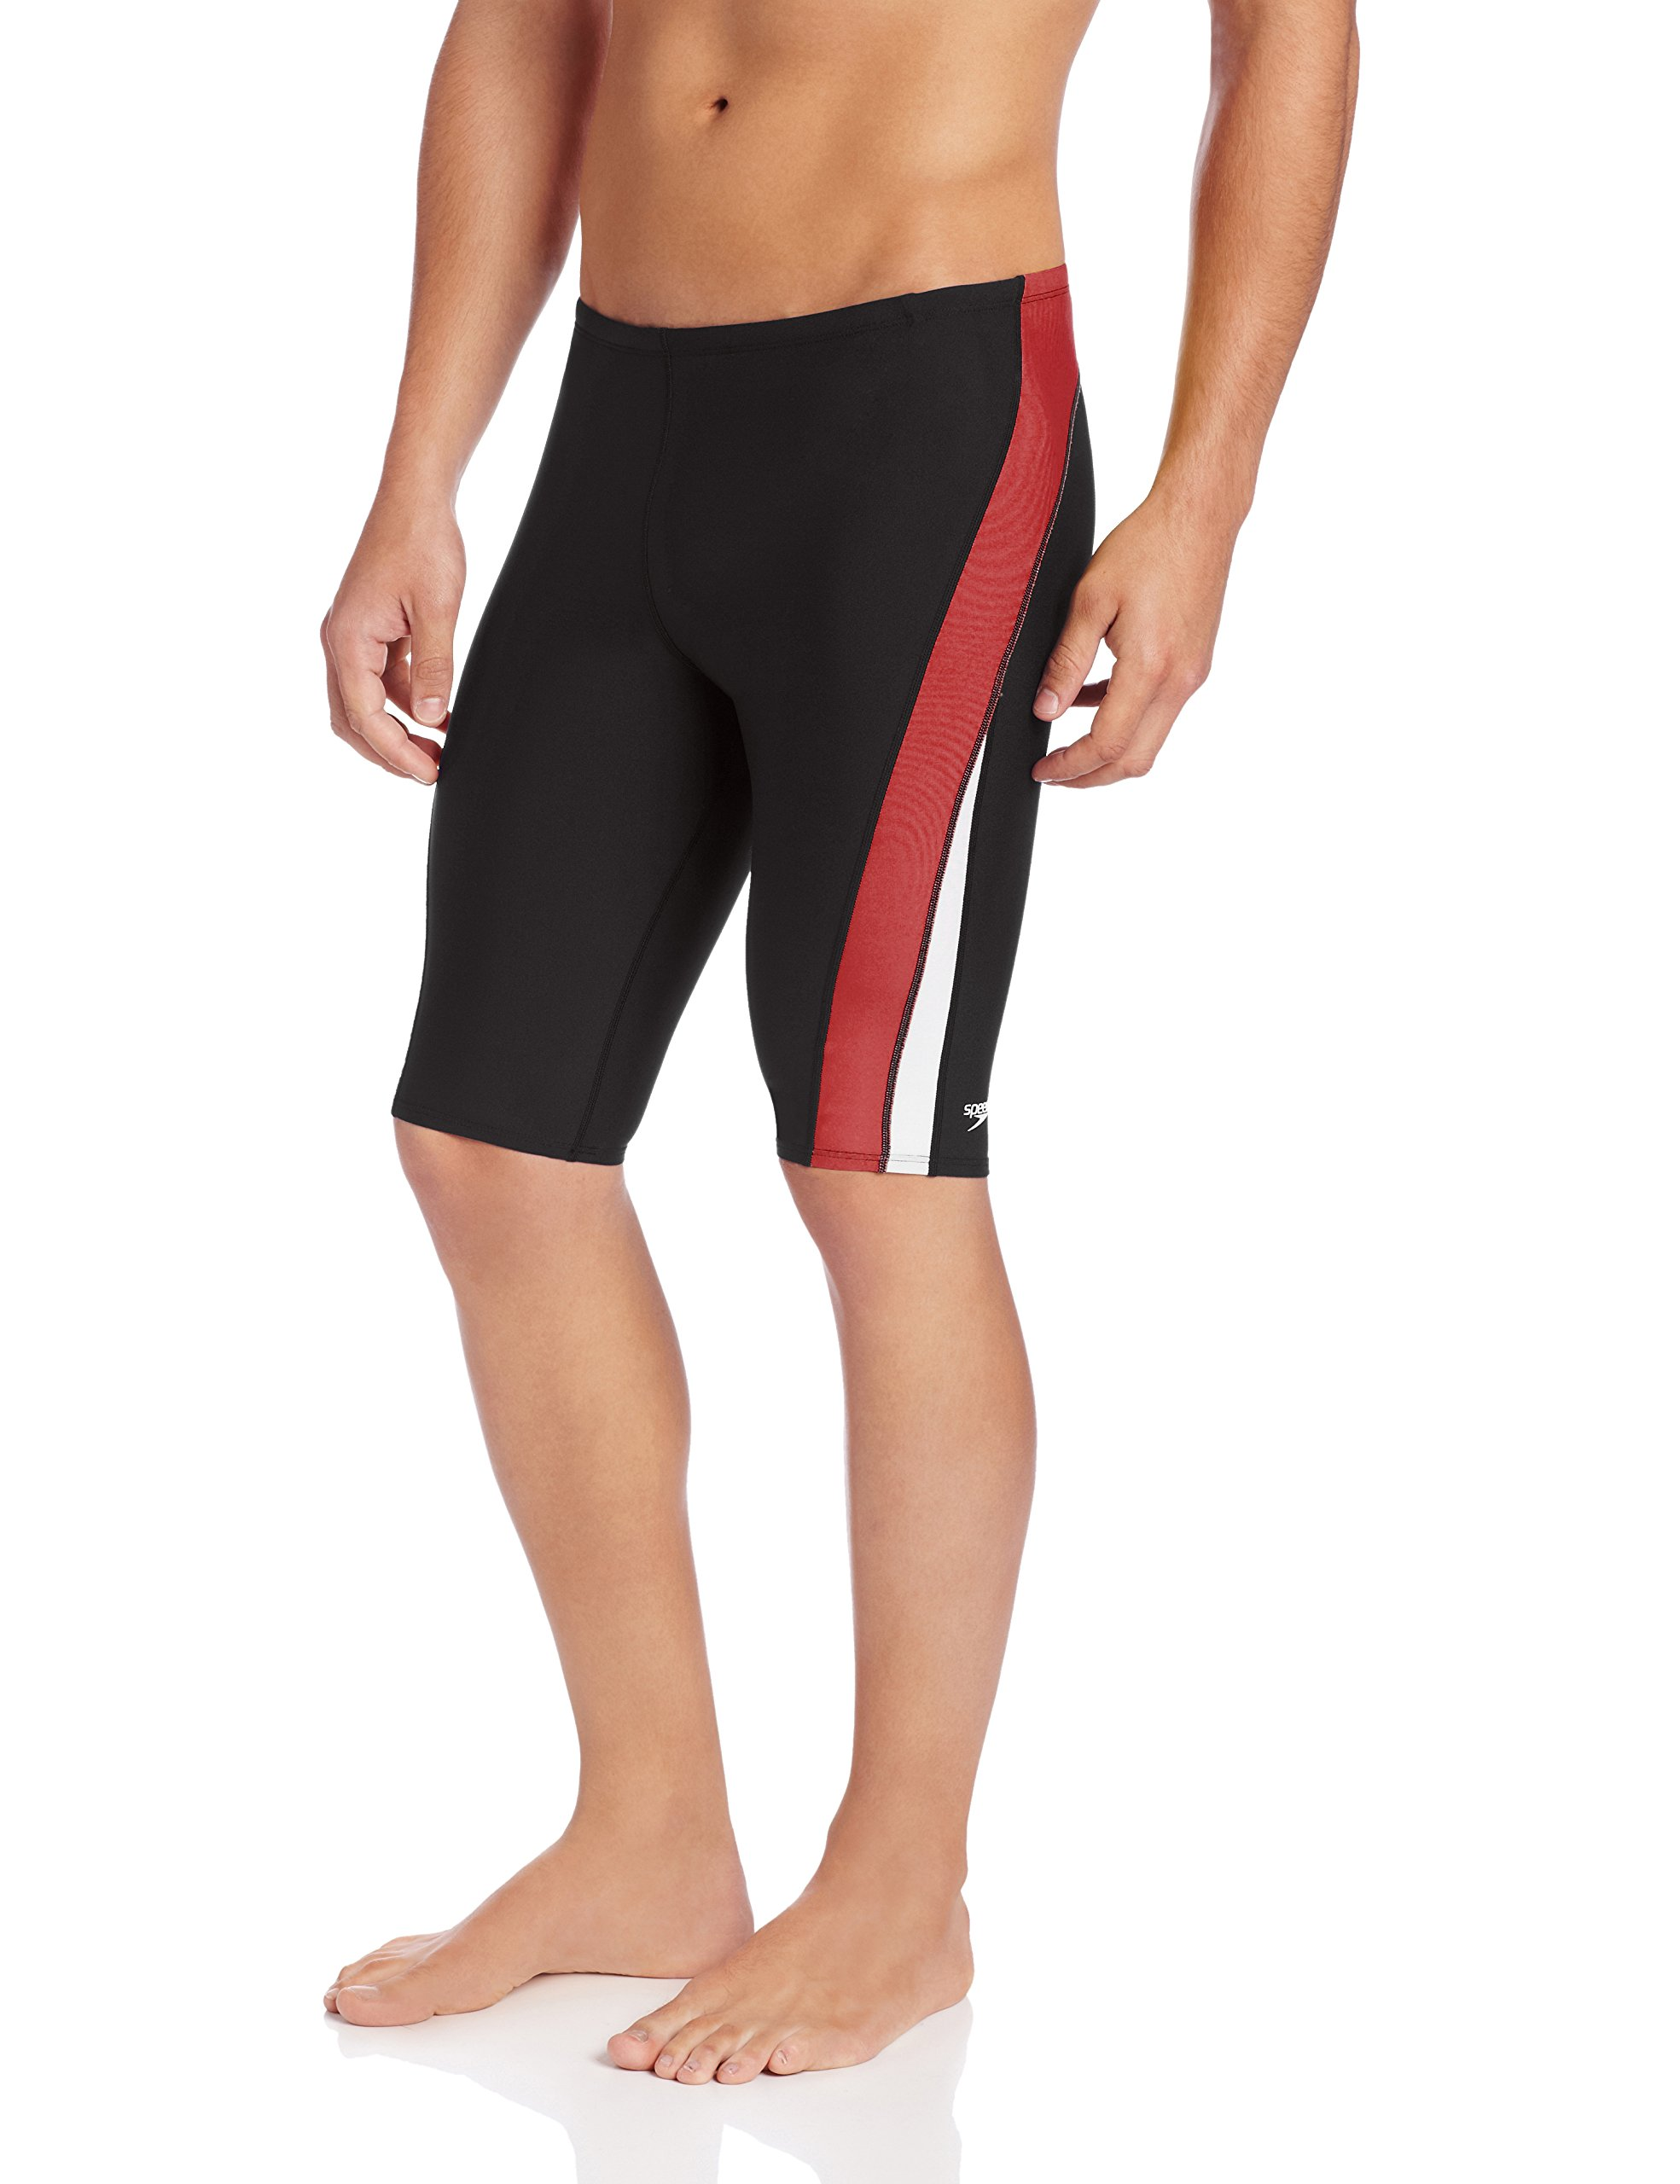 Speedo Men's Endurance+ Launch Splice Jammer Swimsuit, Black/Maroon, 38